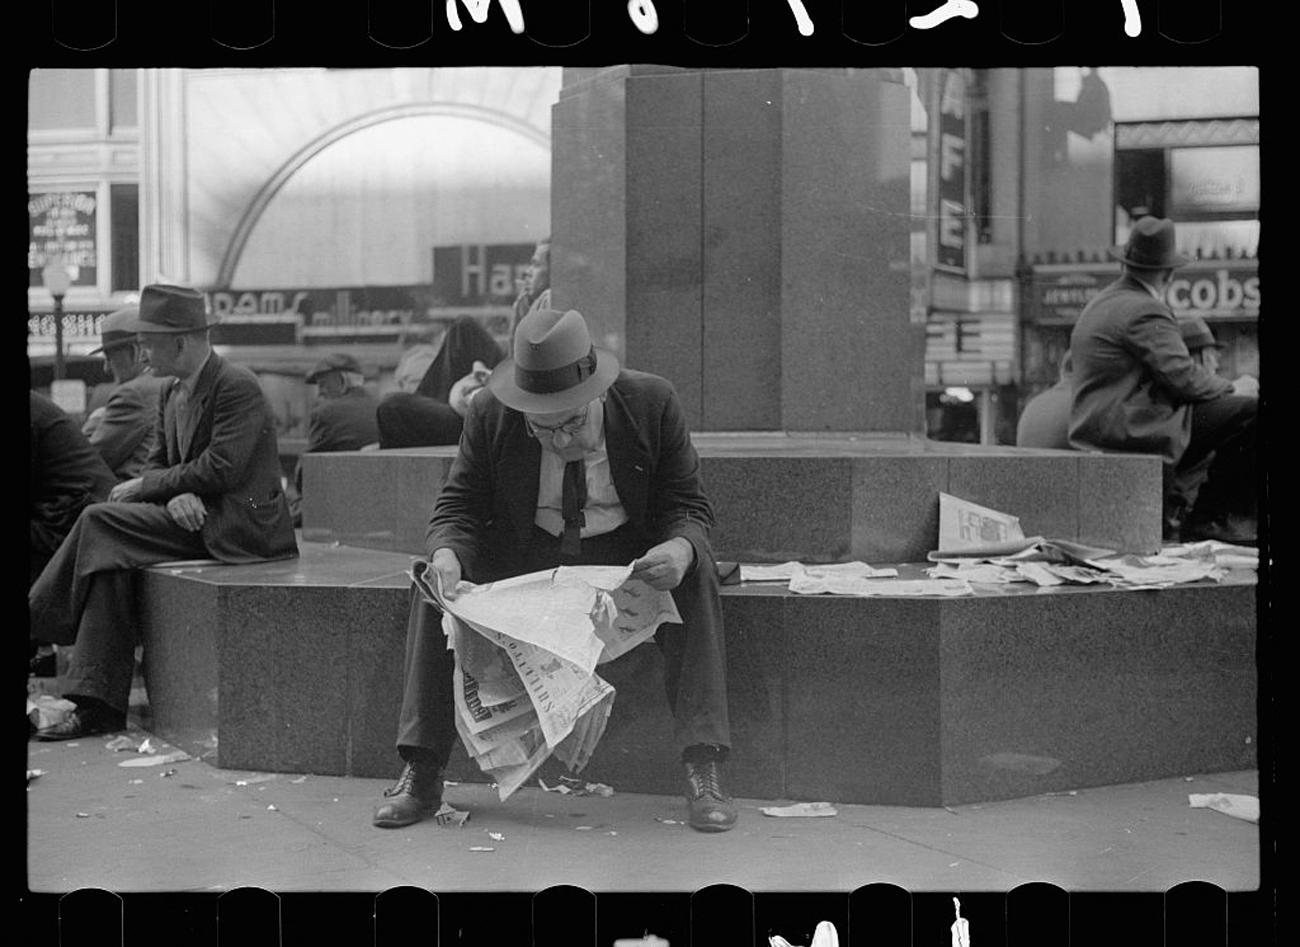 """Man reading newspaper in Fountain Square, Cincinnati, Ohio"" in{ }October 1938{ }/ Image: John Vachon for the U.S. Farm Security Administration/Office of War Information accessed via the Library of Congress Archives // Published: 3.4.19"